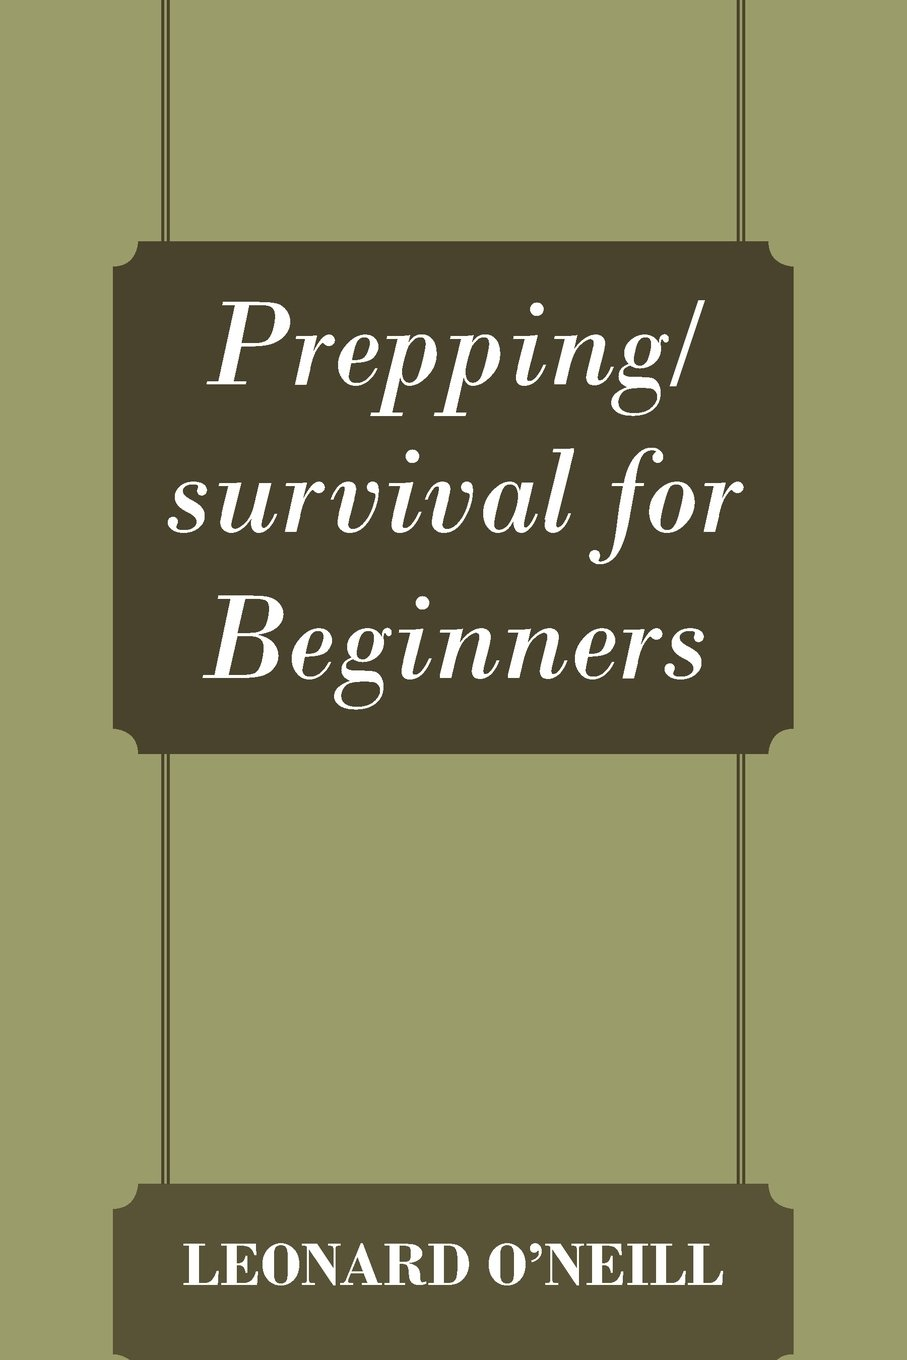 Prepping/survival for Beginners